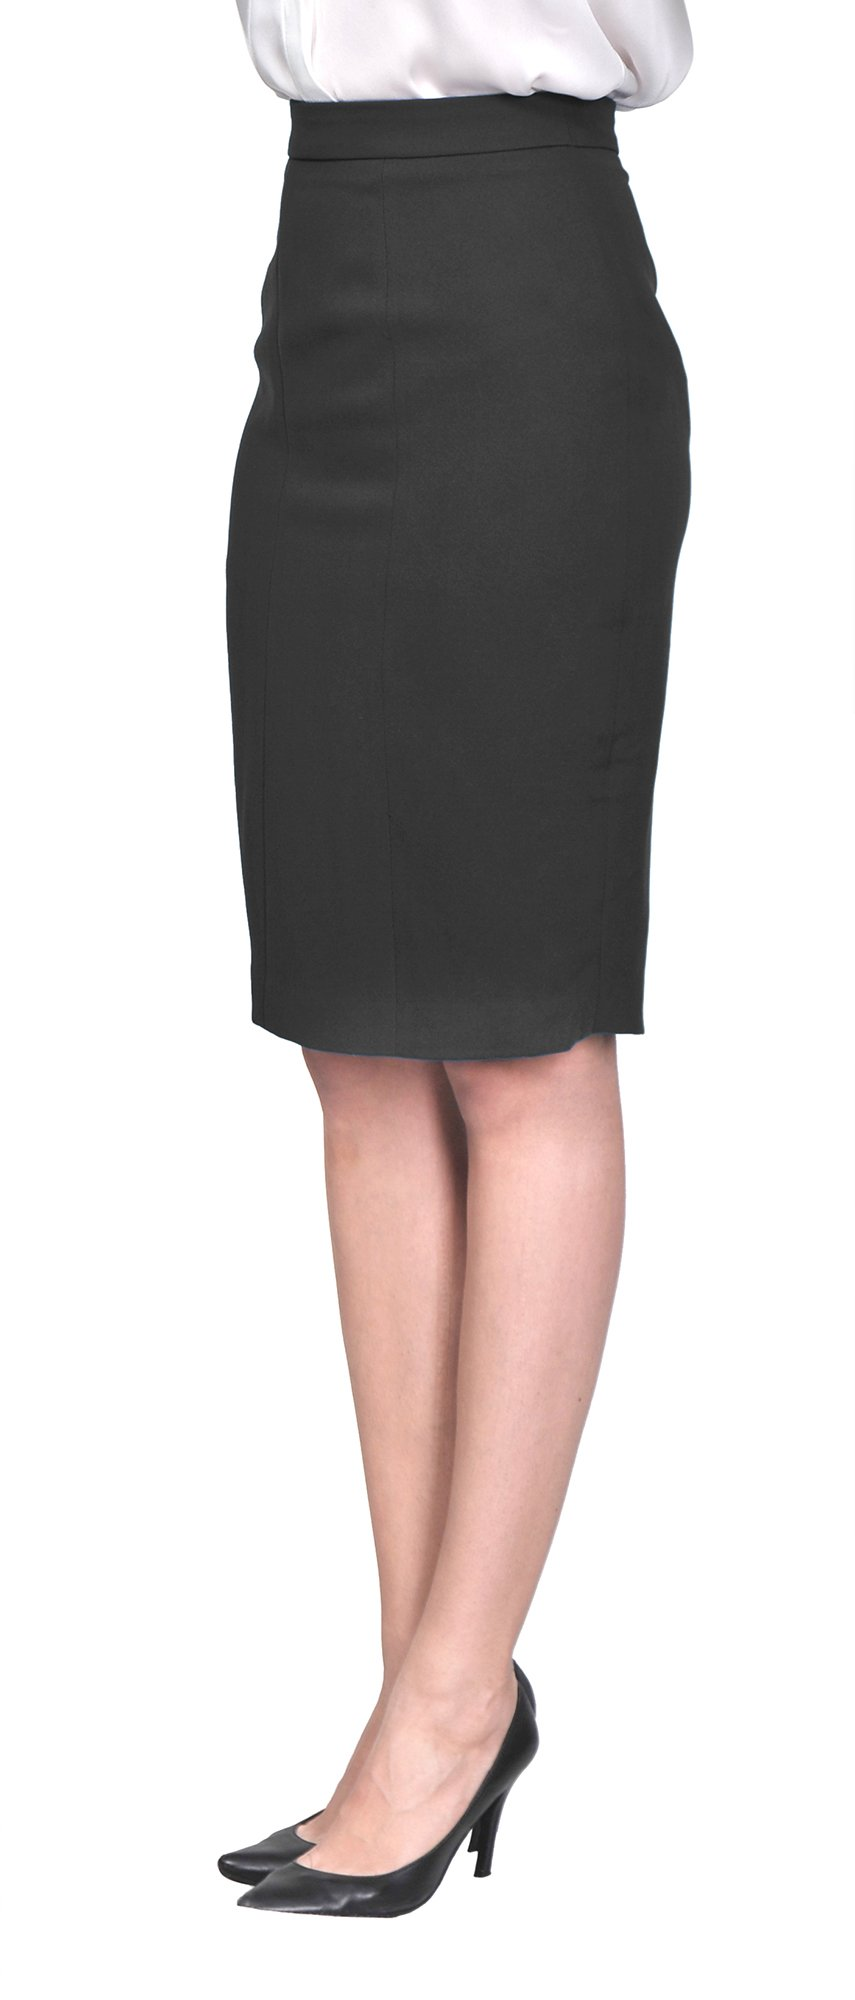 Marycrafts Women's Lined Pencil Skirt 4 Work Business Office 2 black by Marycrafts (Image #2)